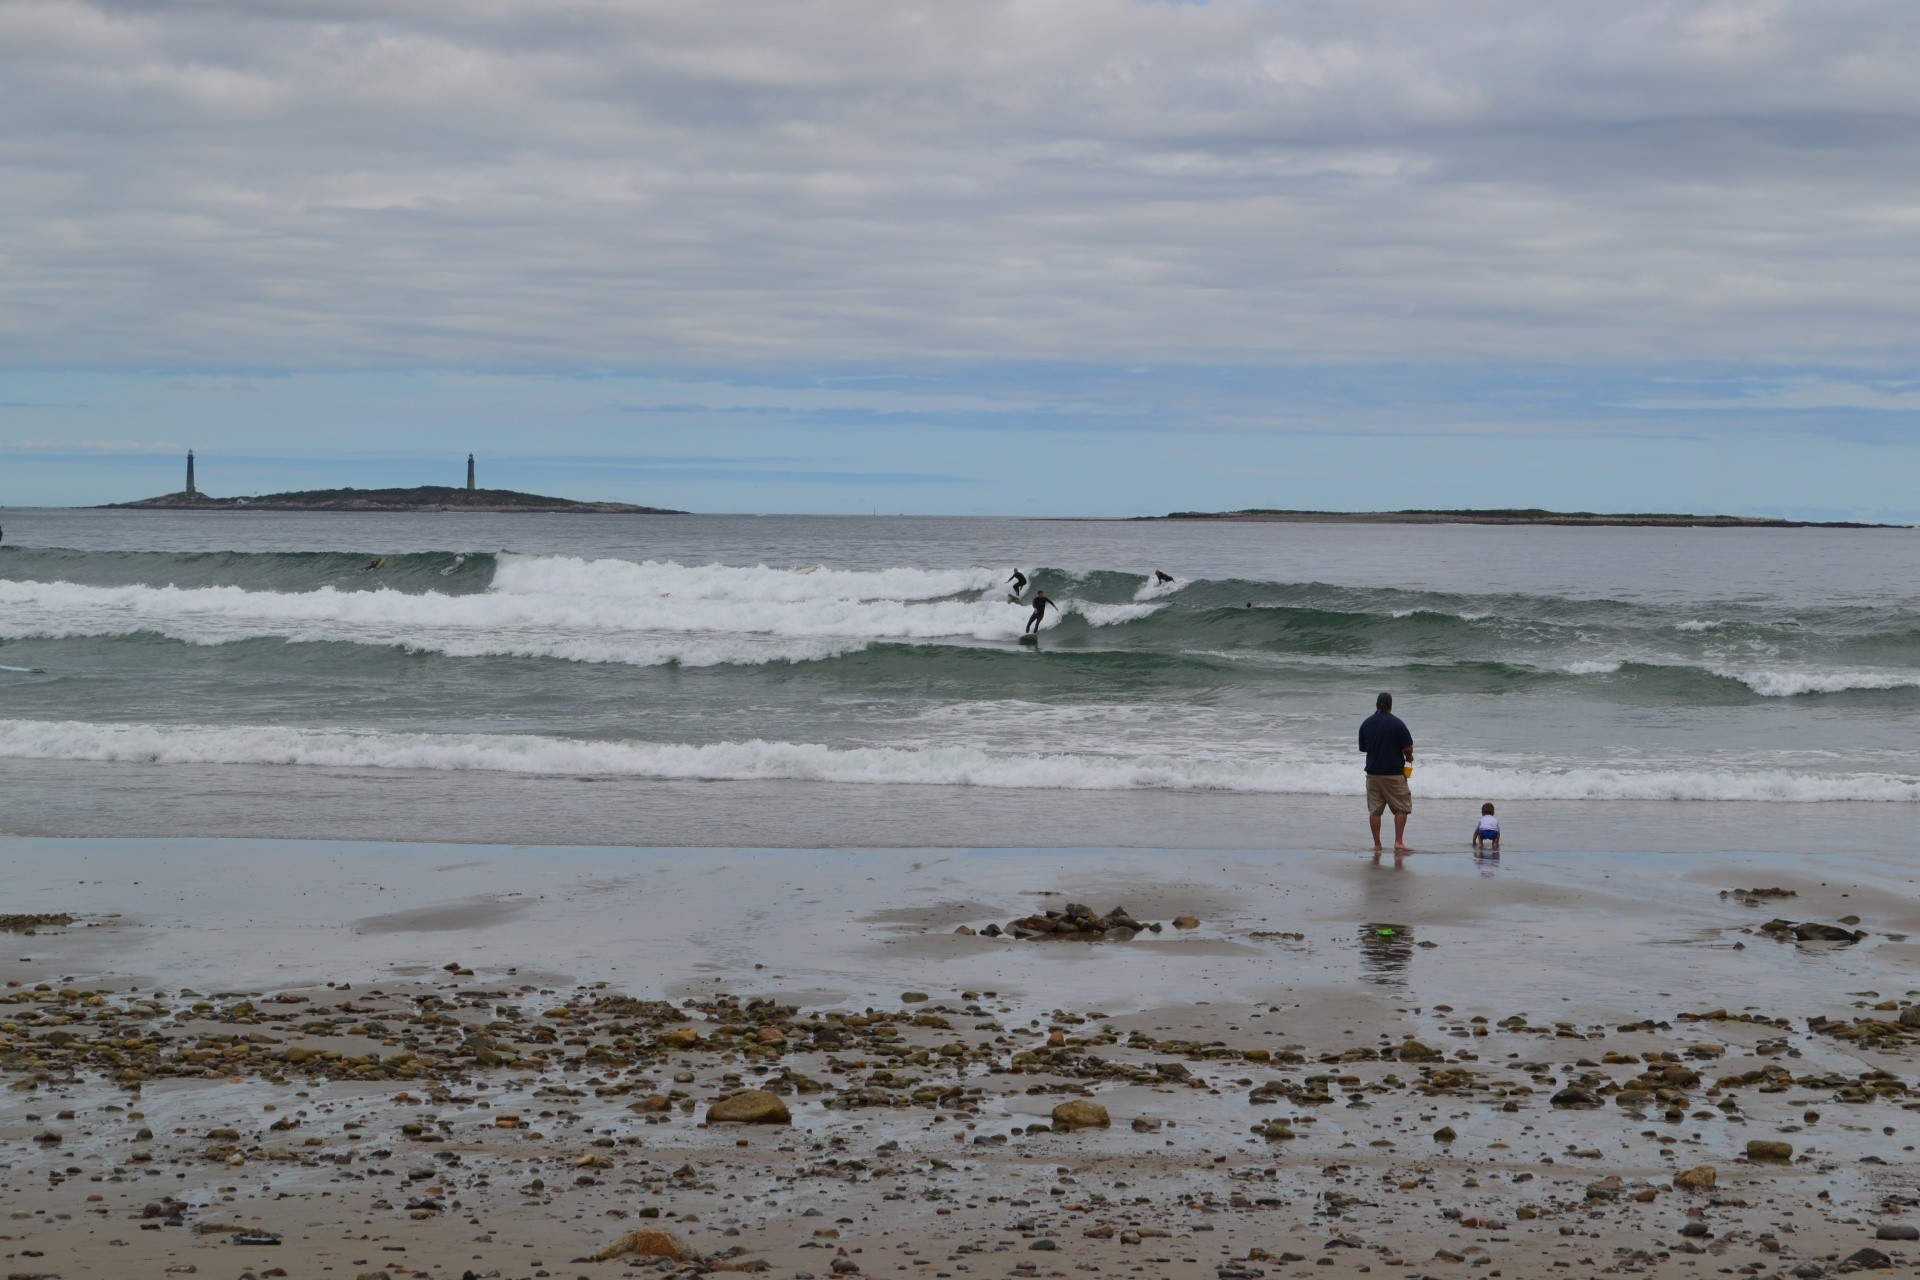 Daily Picture Live Surf Photography's photo of Cape Ann